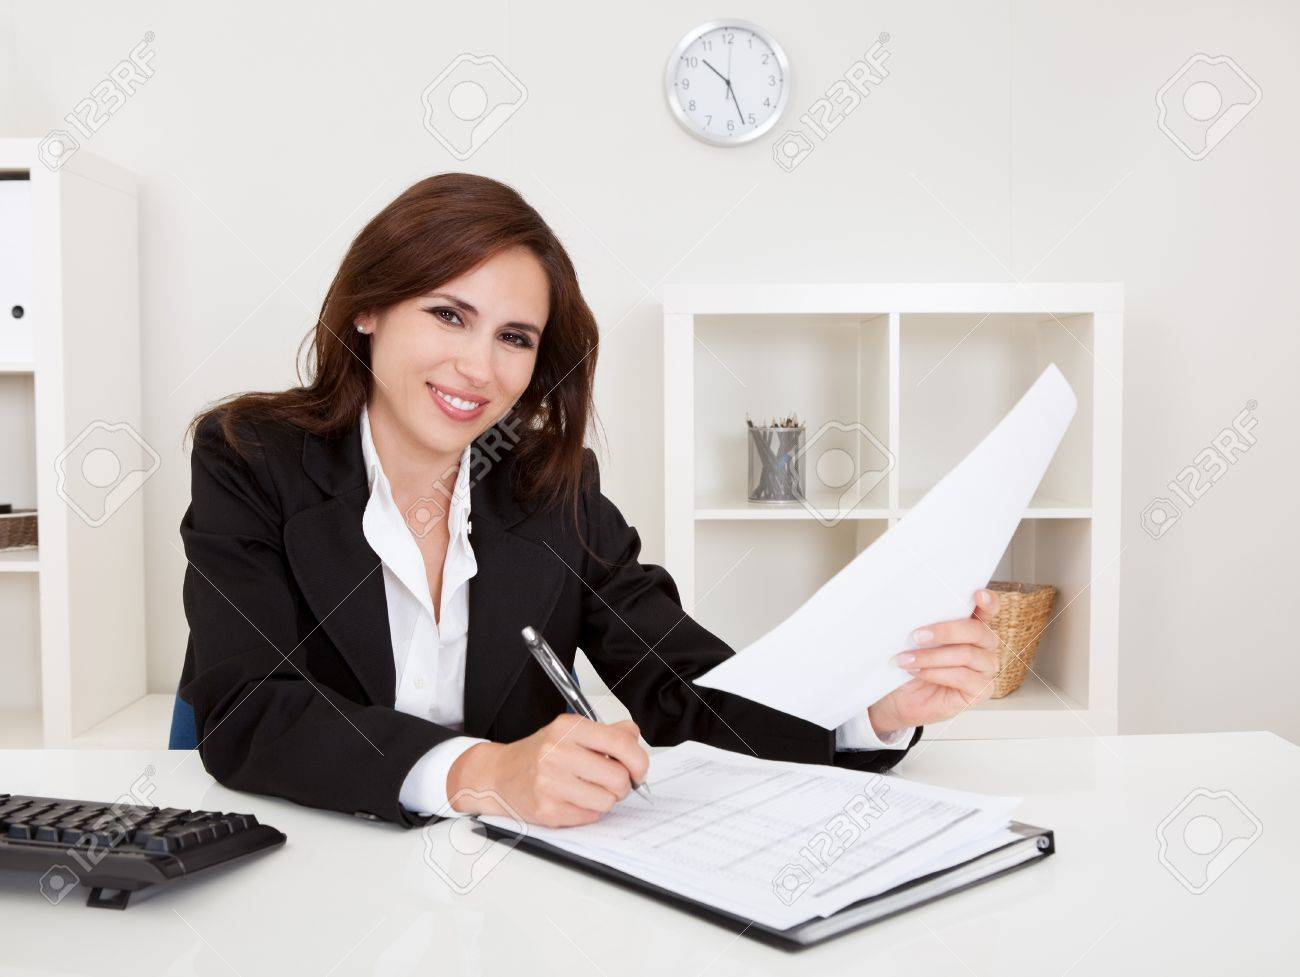 Portrait of a businesswoman with paperwork at office desk Stock Photo - 15493580